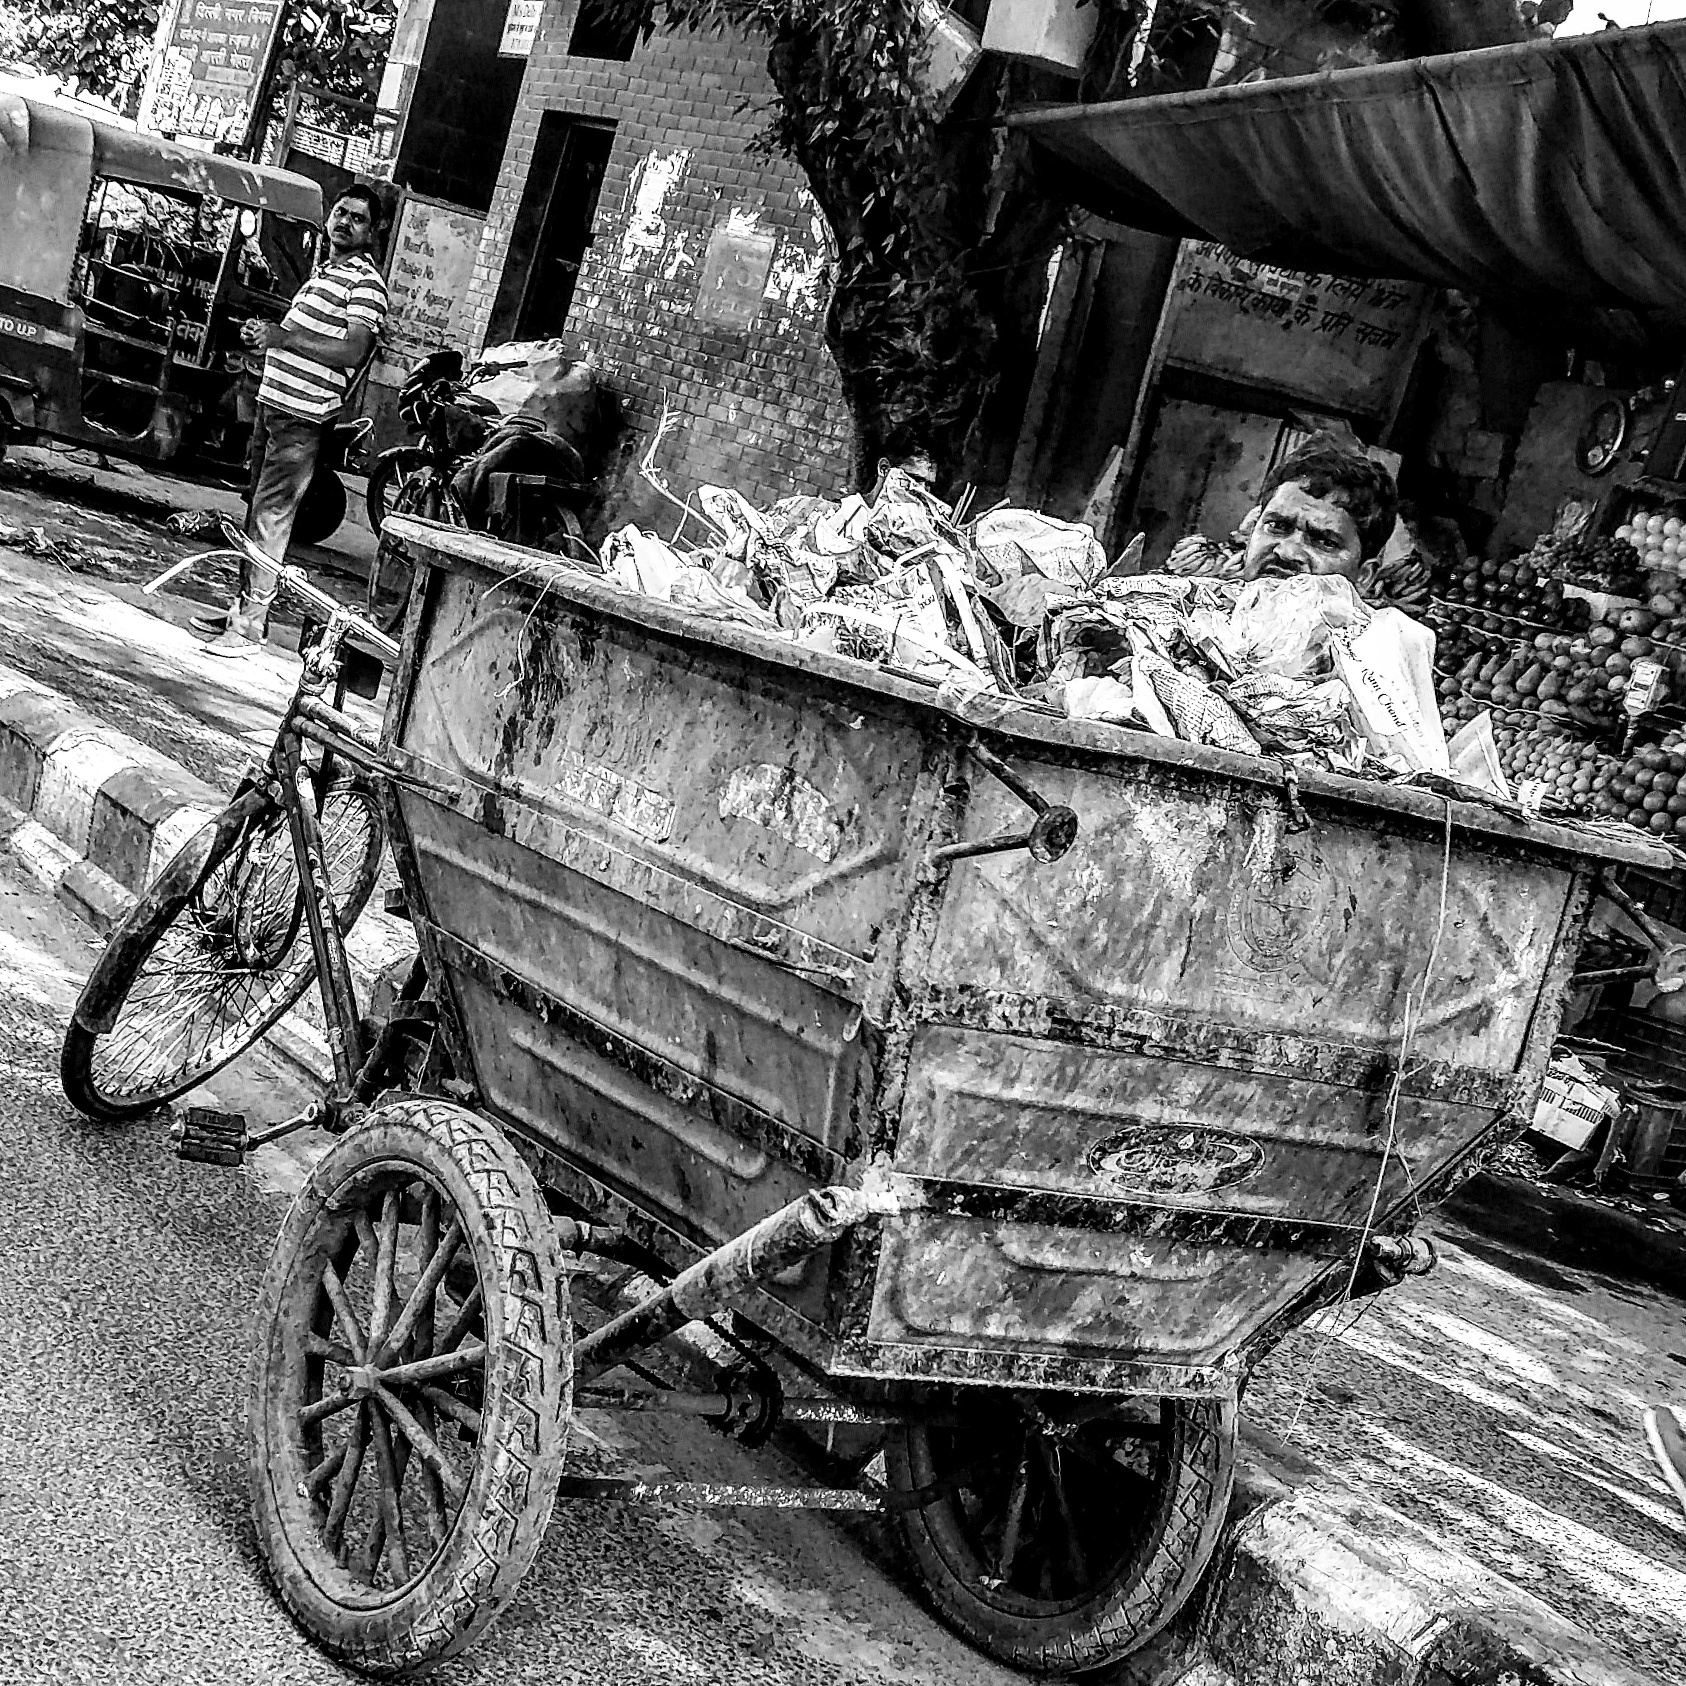 A road-cleaner uploading waste on his van in the Green Park area of South Delhi